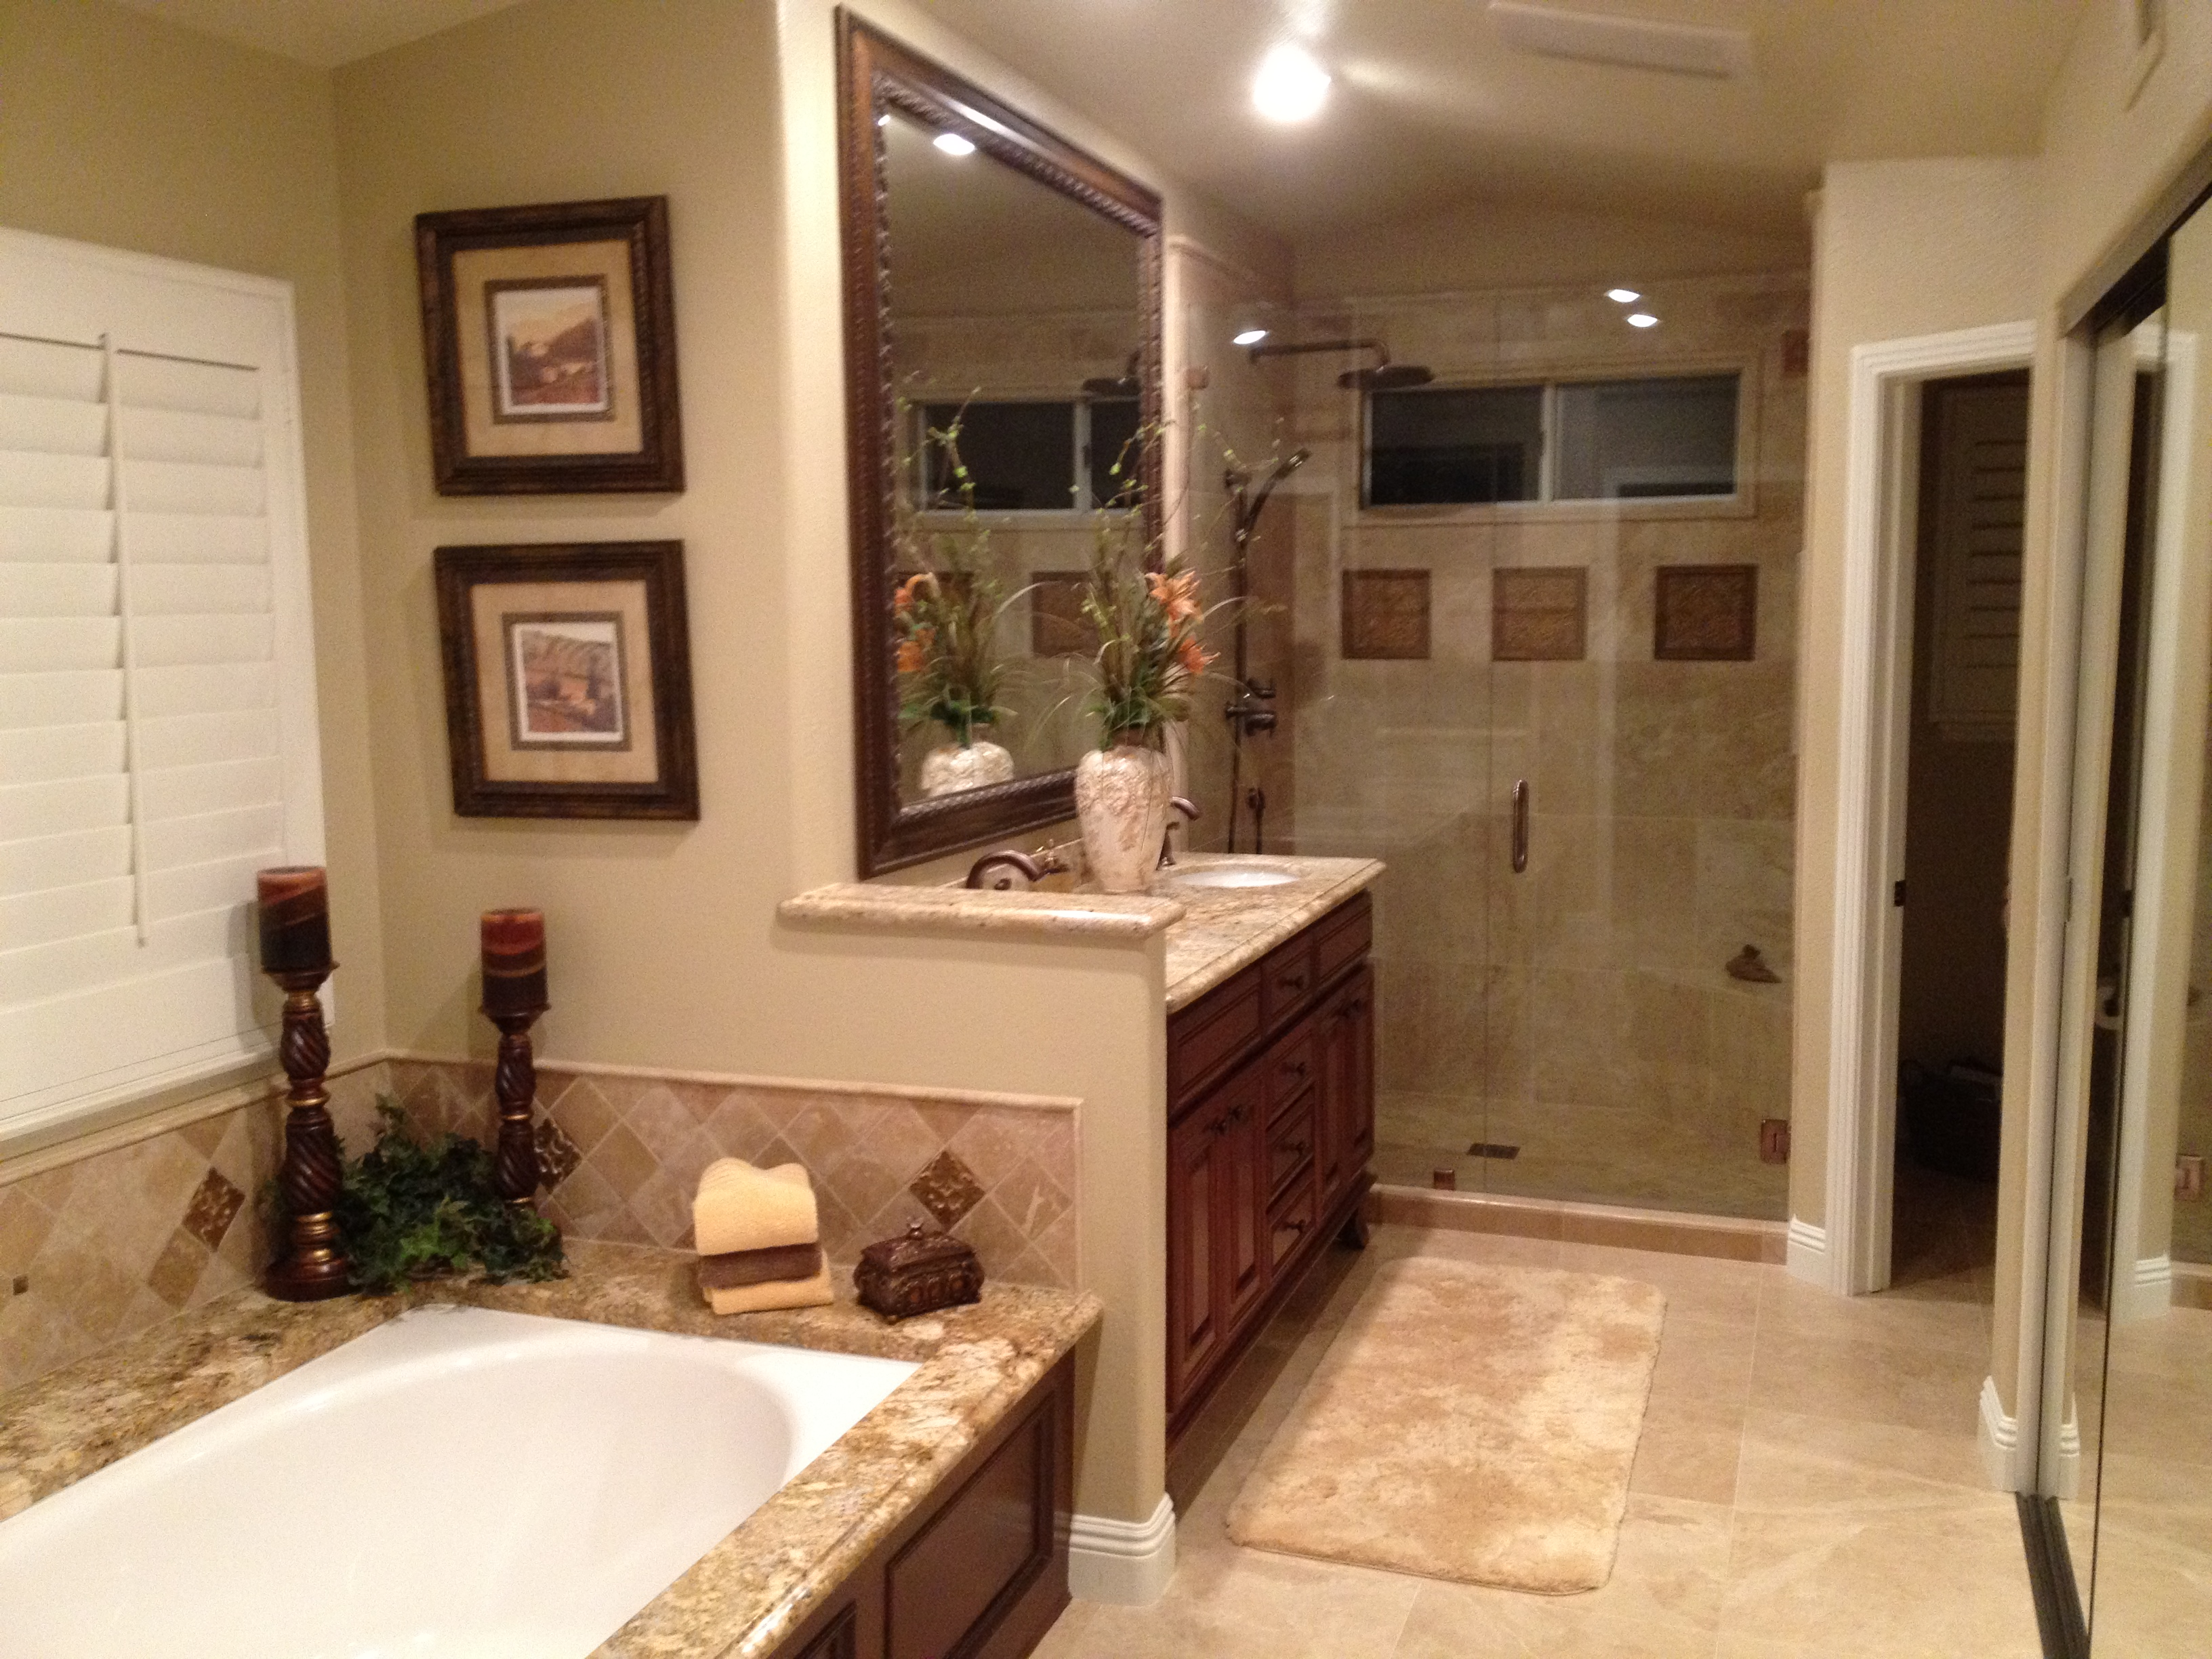 Bathroom Remodeling Orange County Ca Bathroom Remodel Orange County Ca  Custom Bathrooms In Orange County